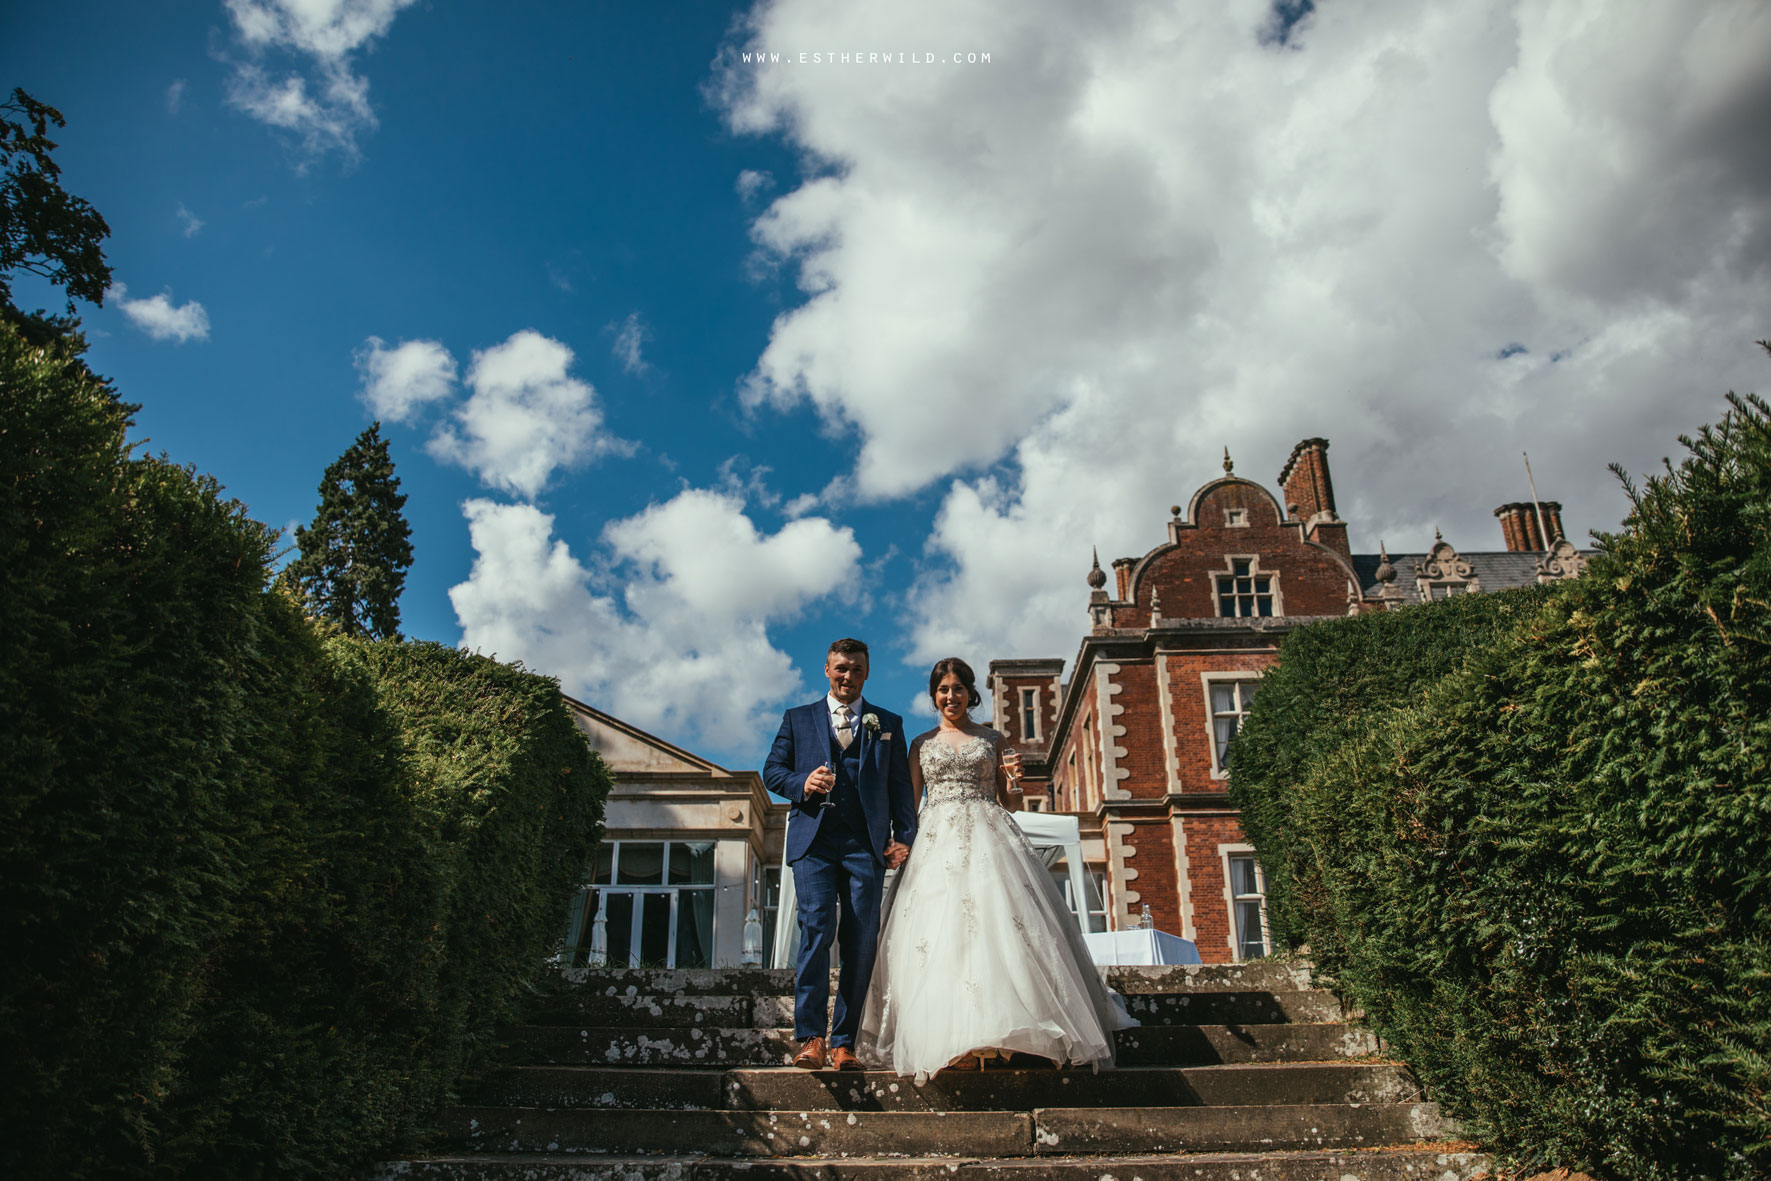 Lynford_Hall_Wedding_Thetford_Mundford_Esther_Wild_Photographer_IMG_1674.jpg